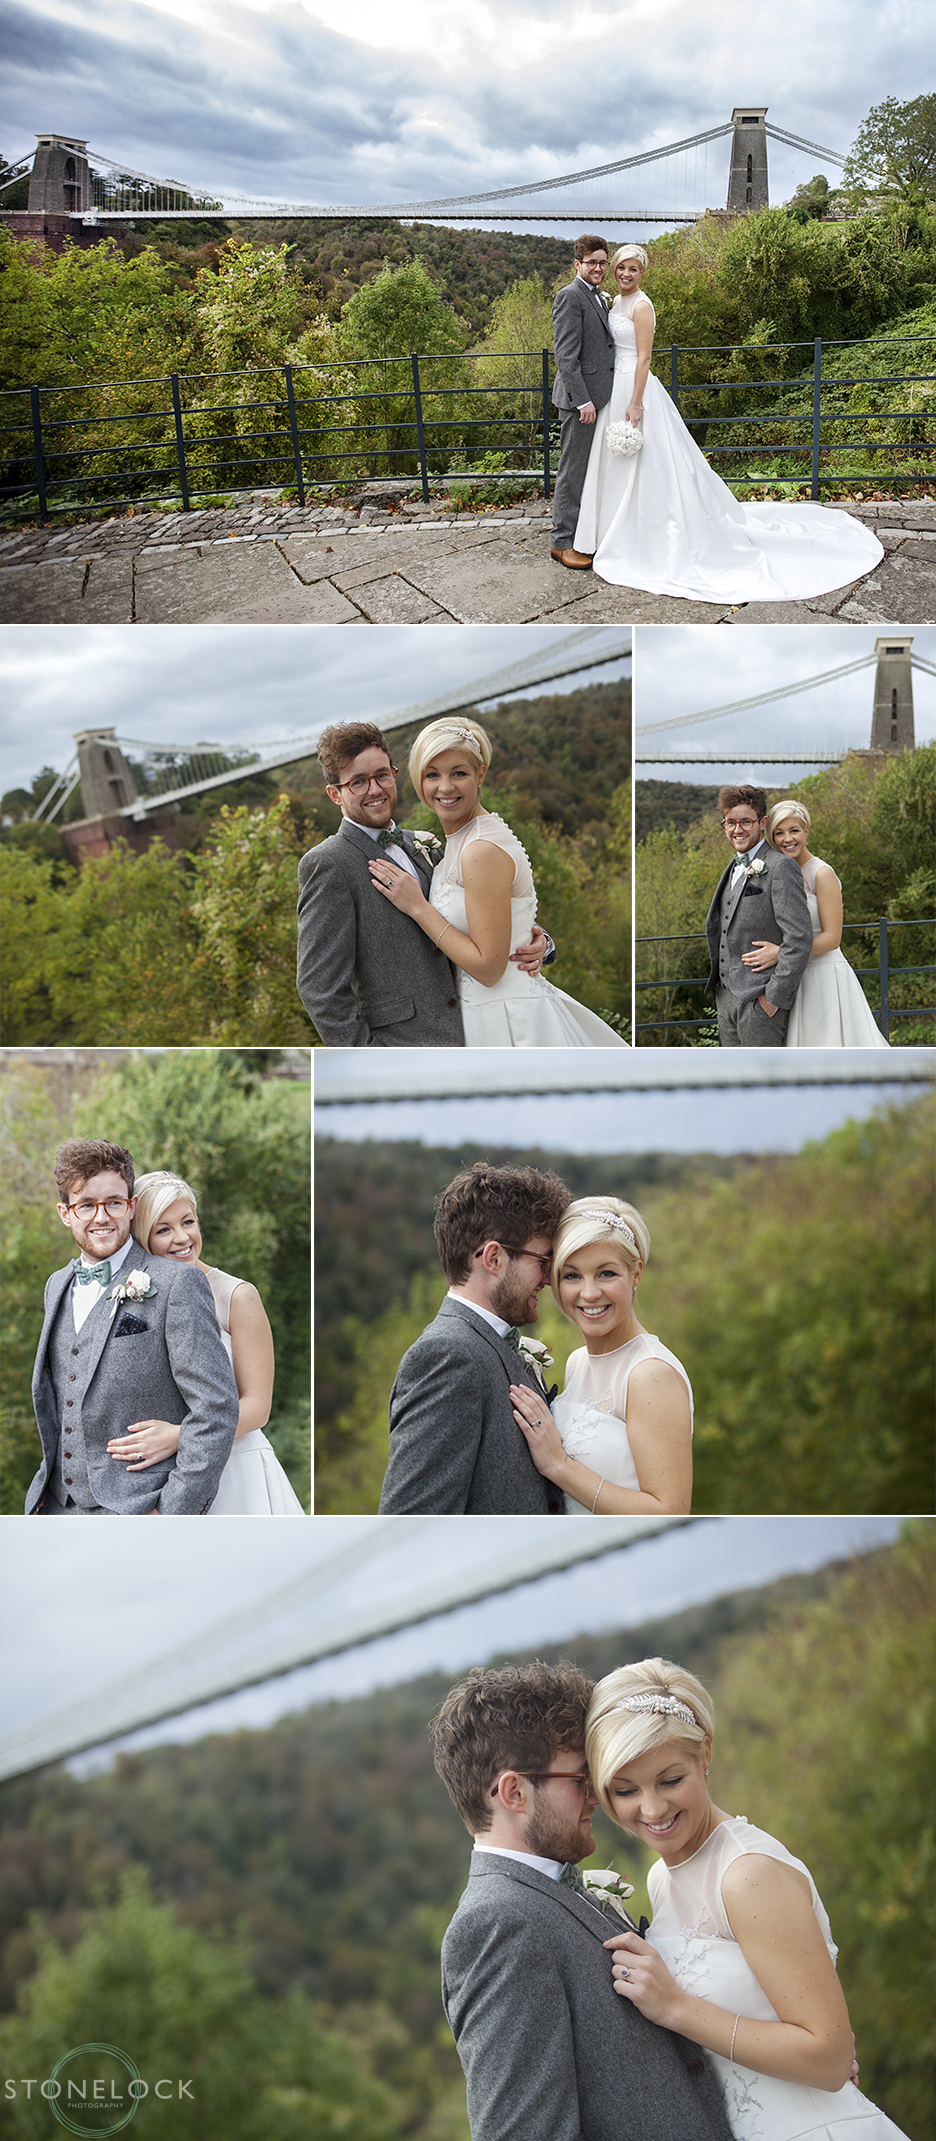 The bride and groom pose for their wedding photography beside the Clifton Suspension Bridge in Bristol